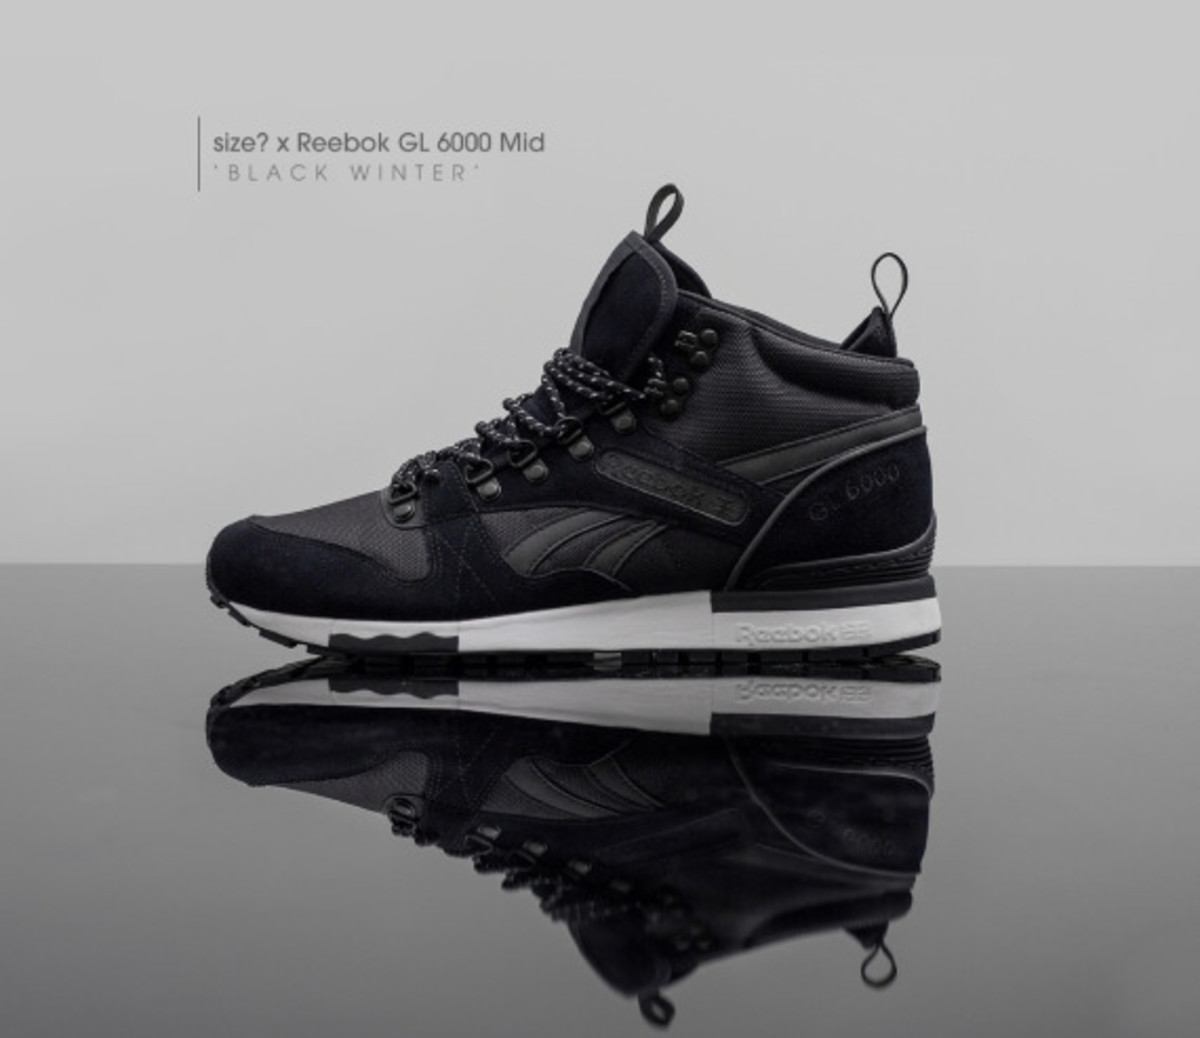 reebok-black-winter-pack-size-exclusive-02